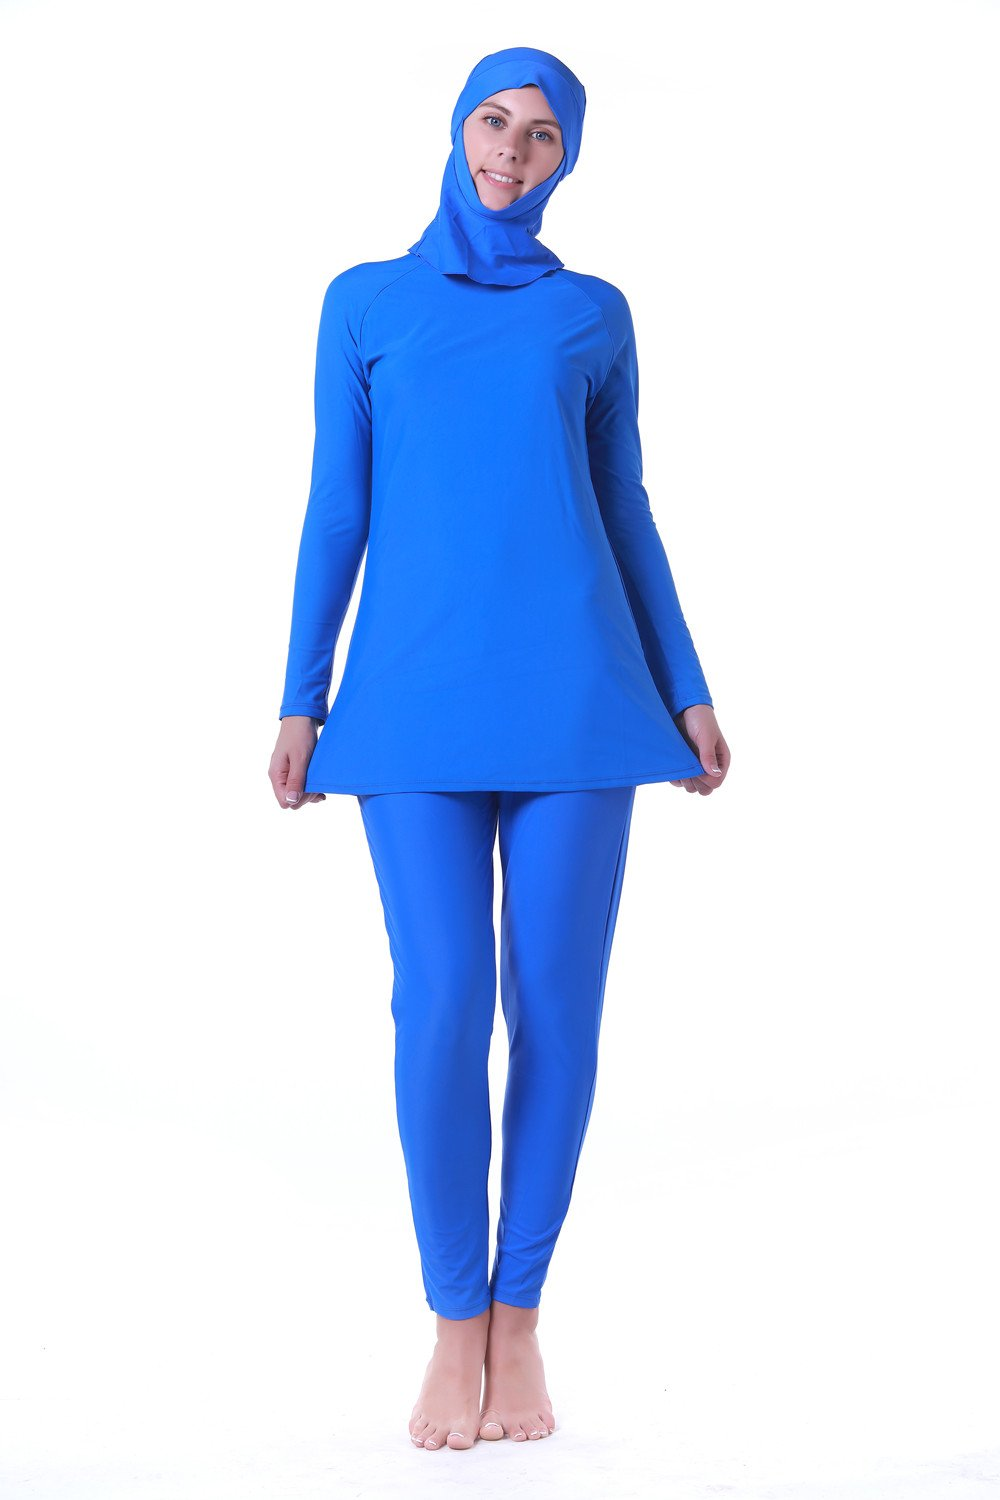 Muslim Women Swimwear Full Coverage Islamic Modest Swimsuit 3 Pieces Full Body with Hijab Sun Protection (M, ZH14005-1)